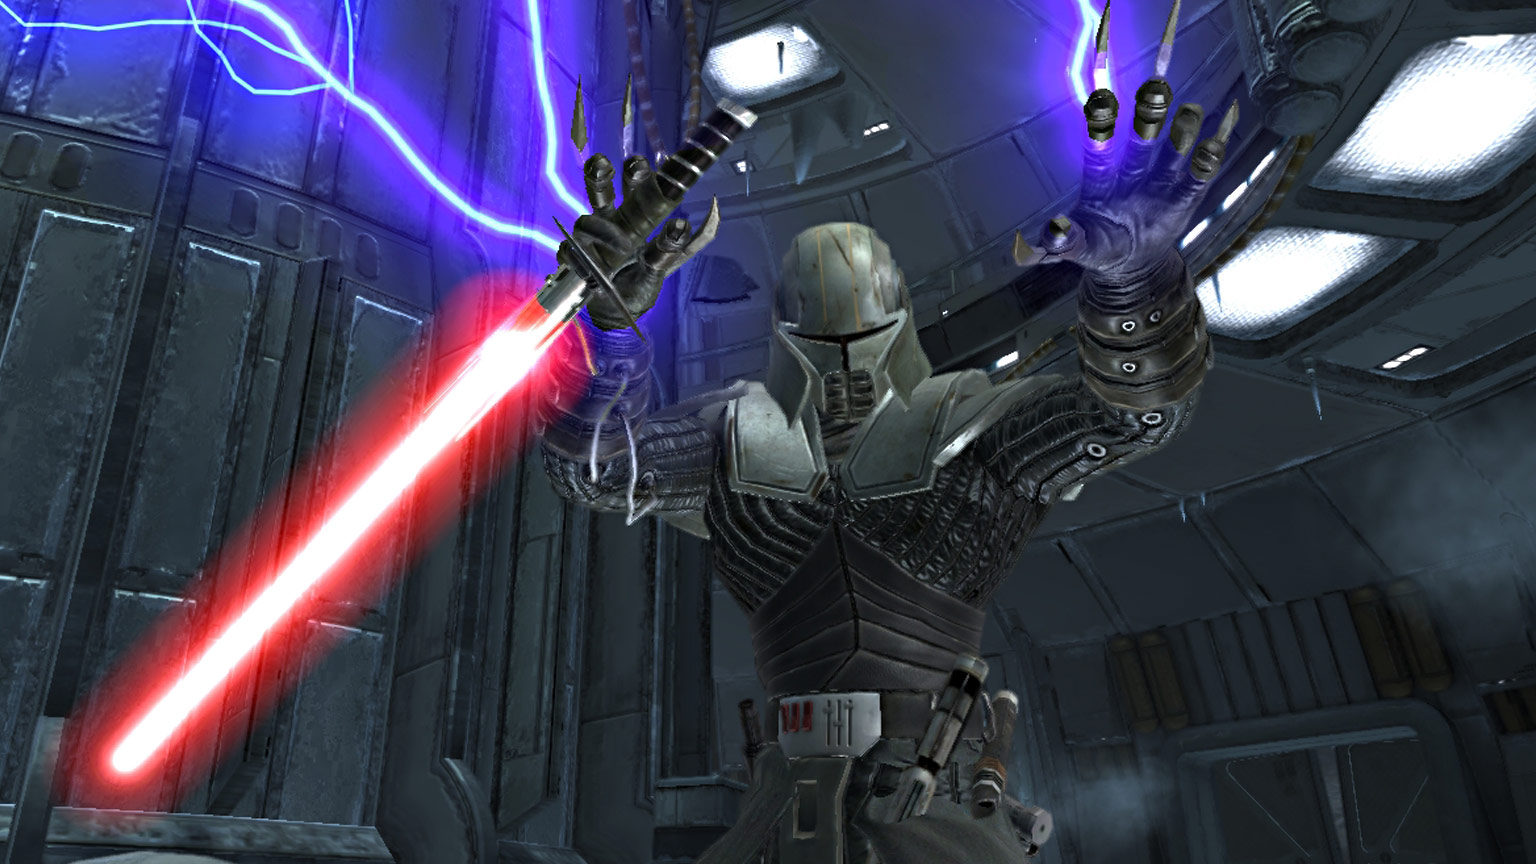 Star Wars: The Force Unleashed - Replaying the Classics